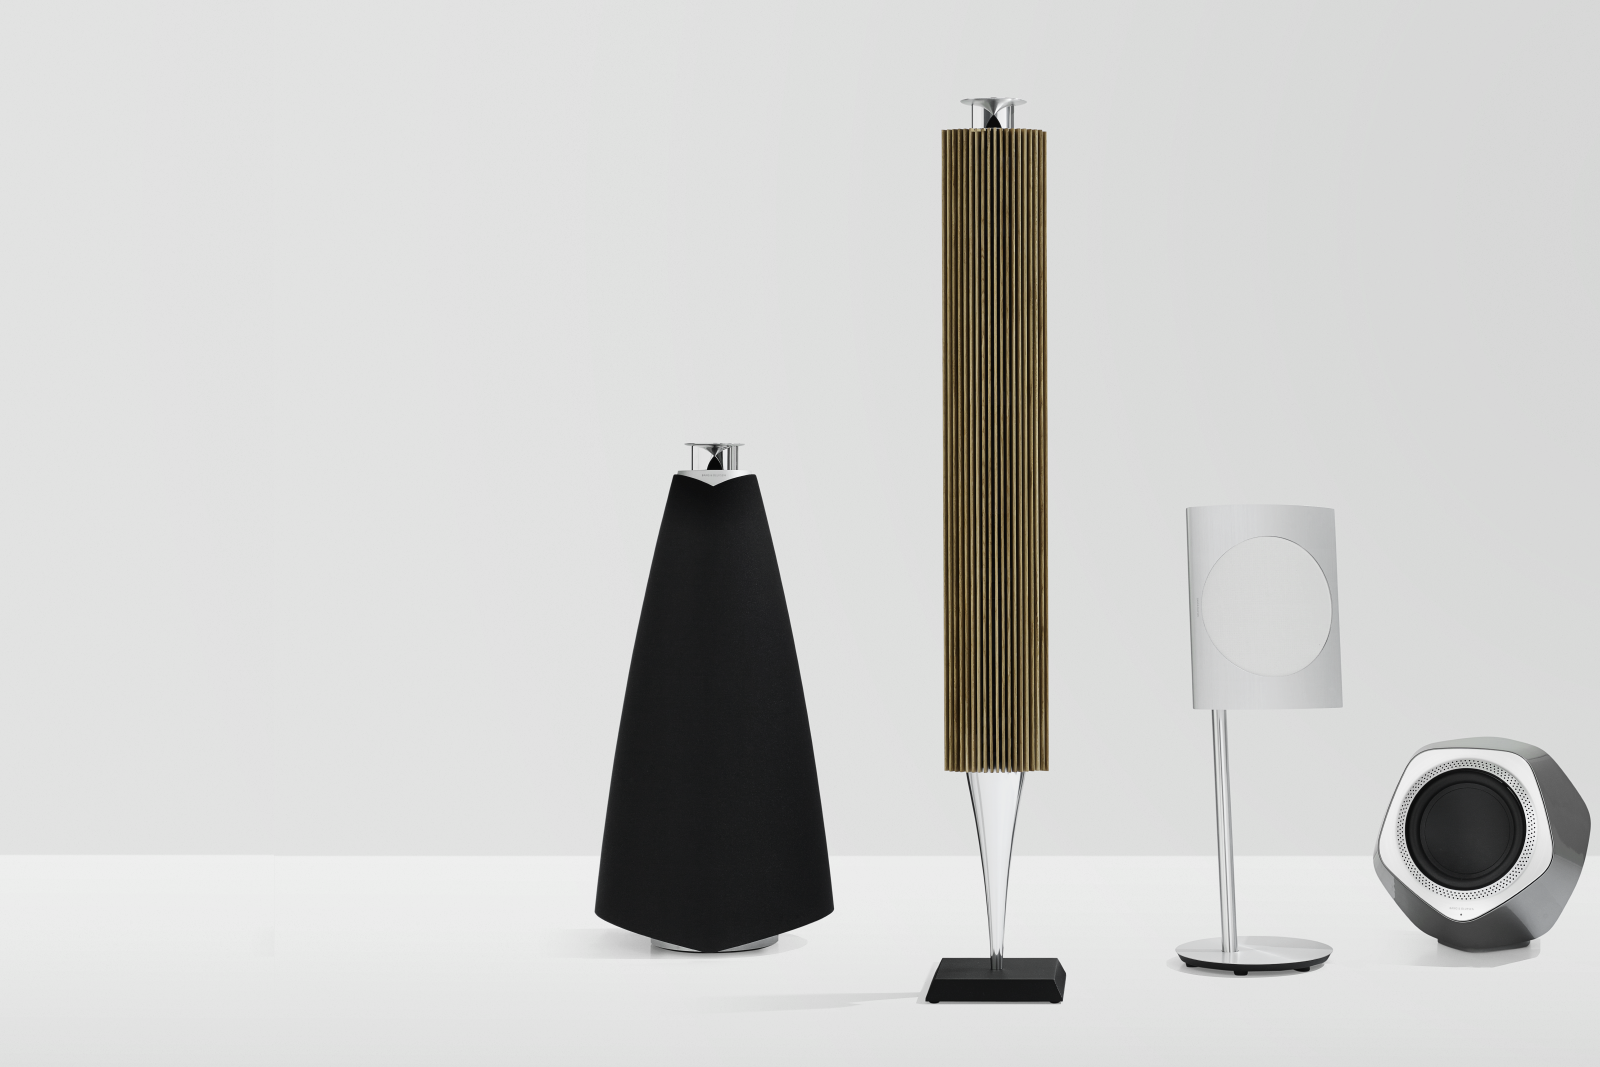 BeoSound Moment is ready for Immaculate Wireless Sound